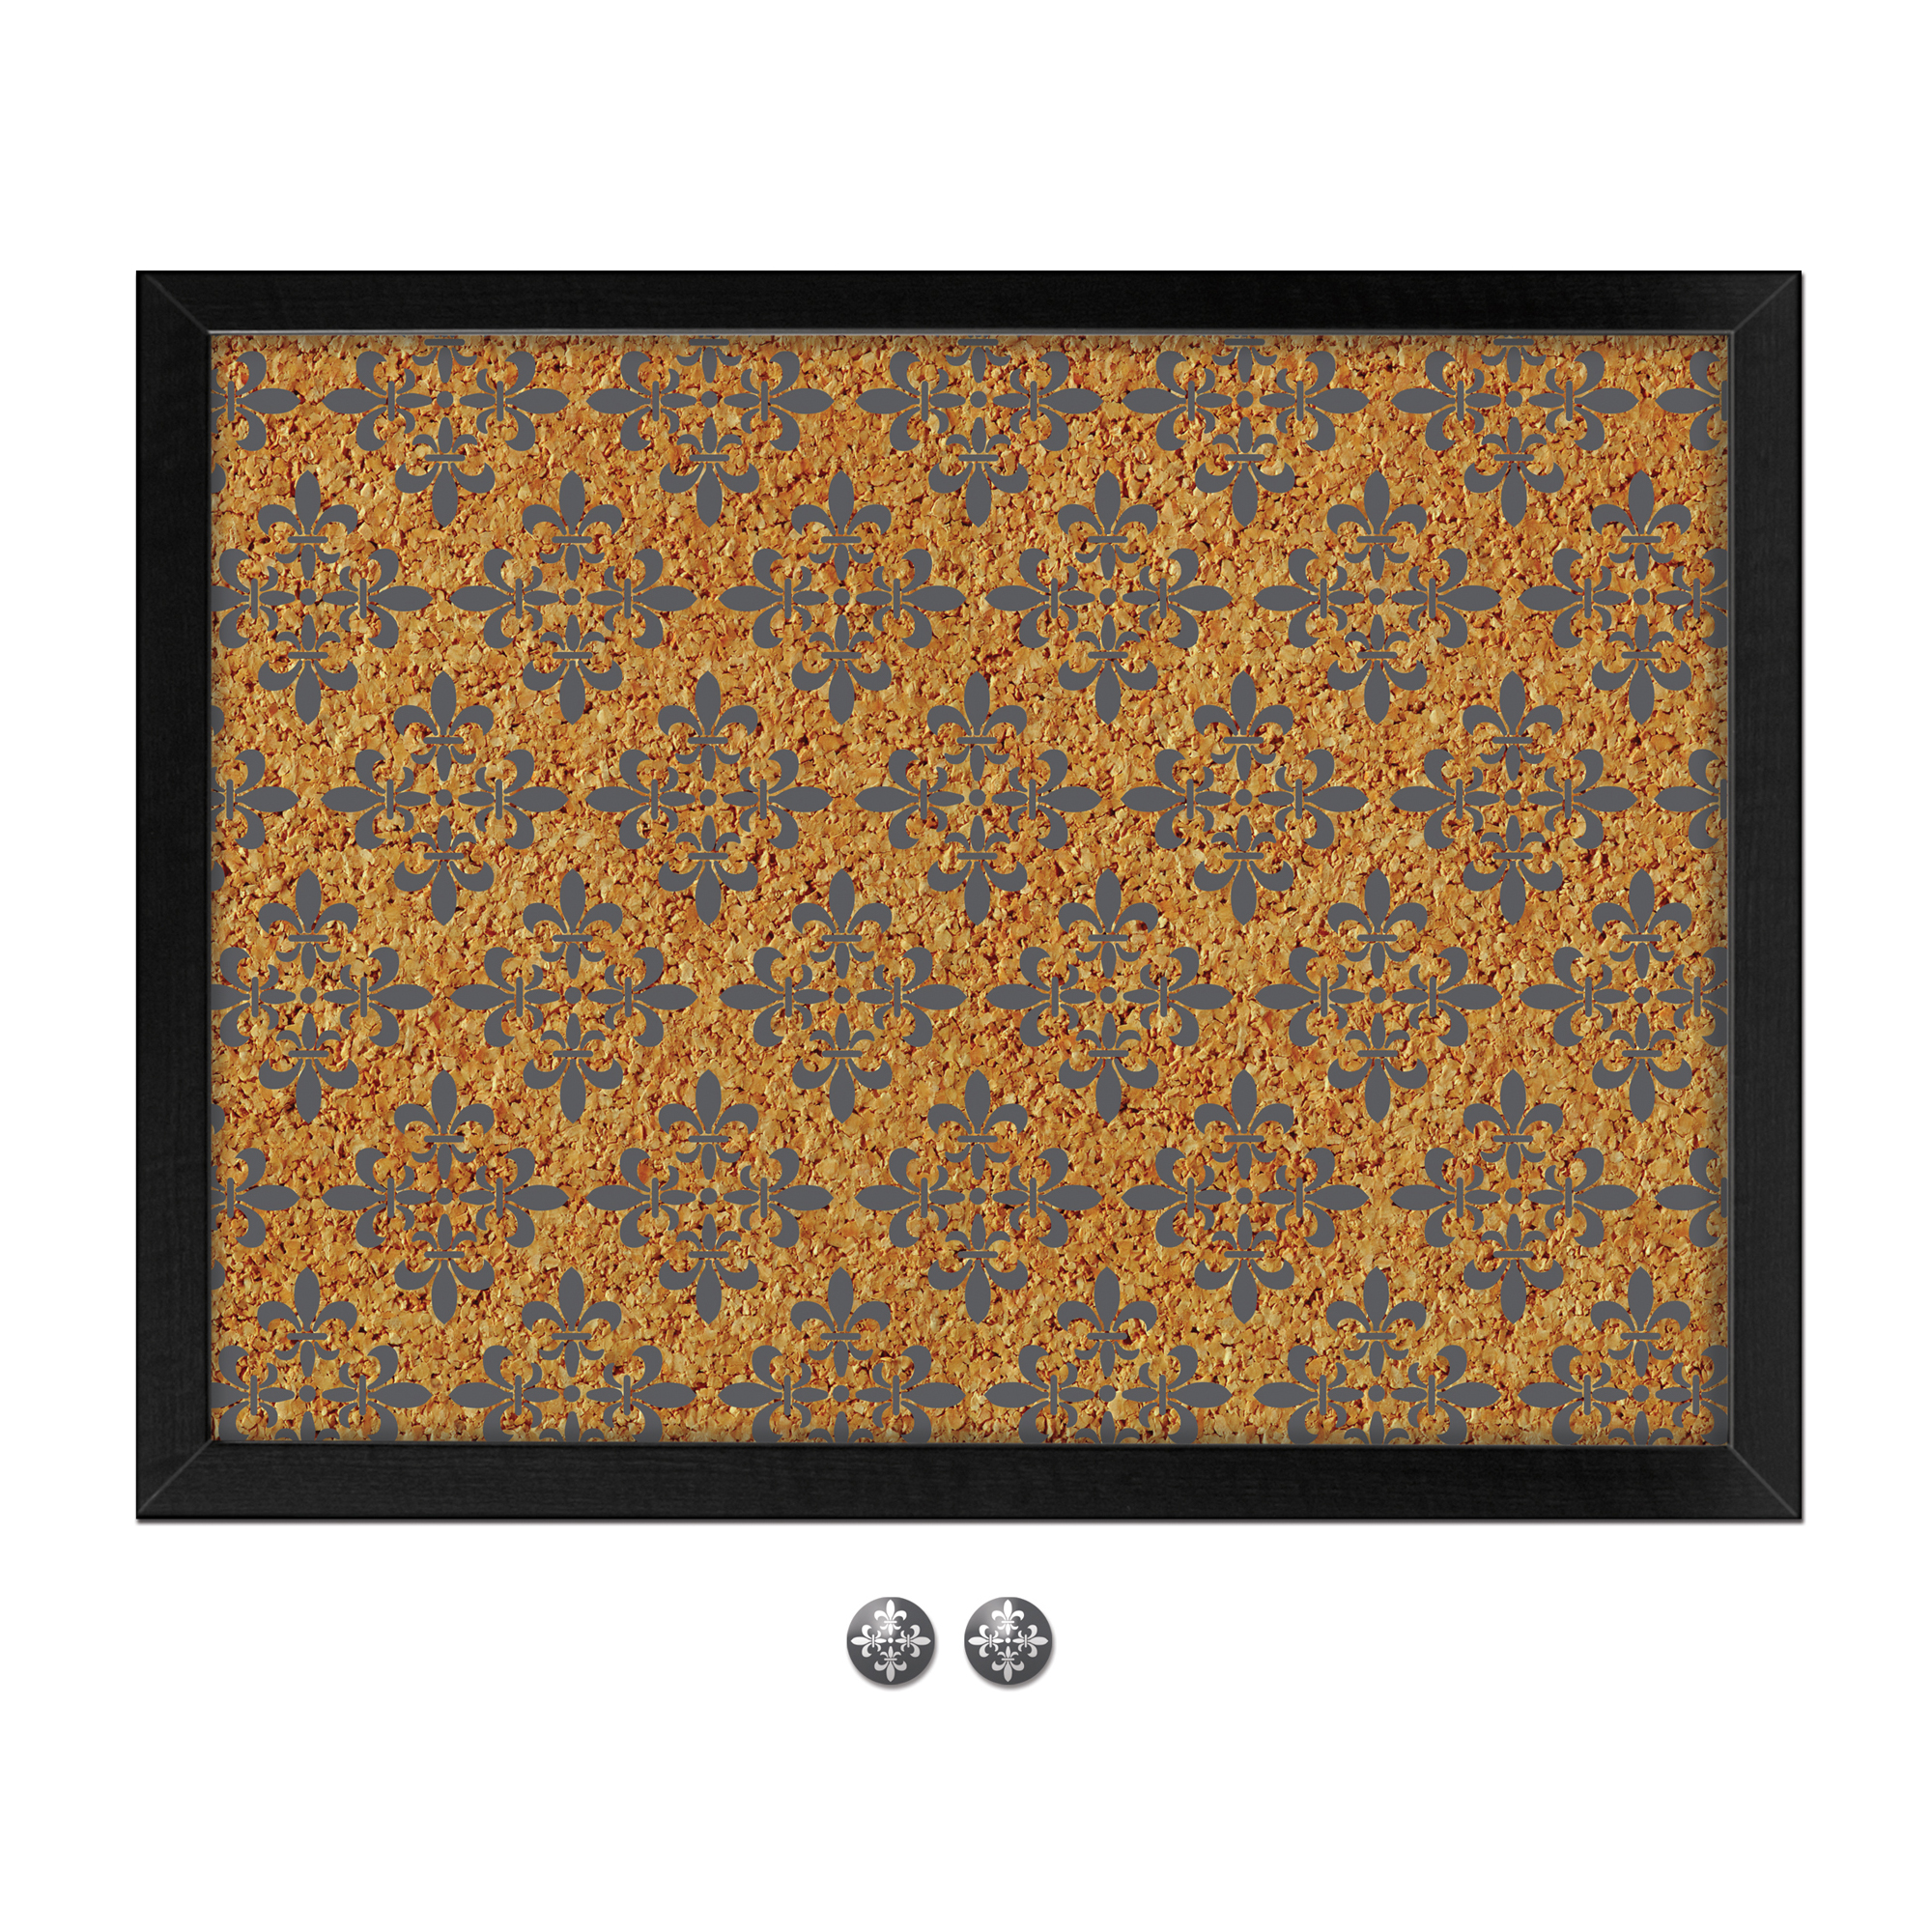 Veranda Printed Cork Board